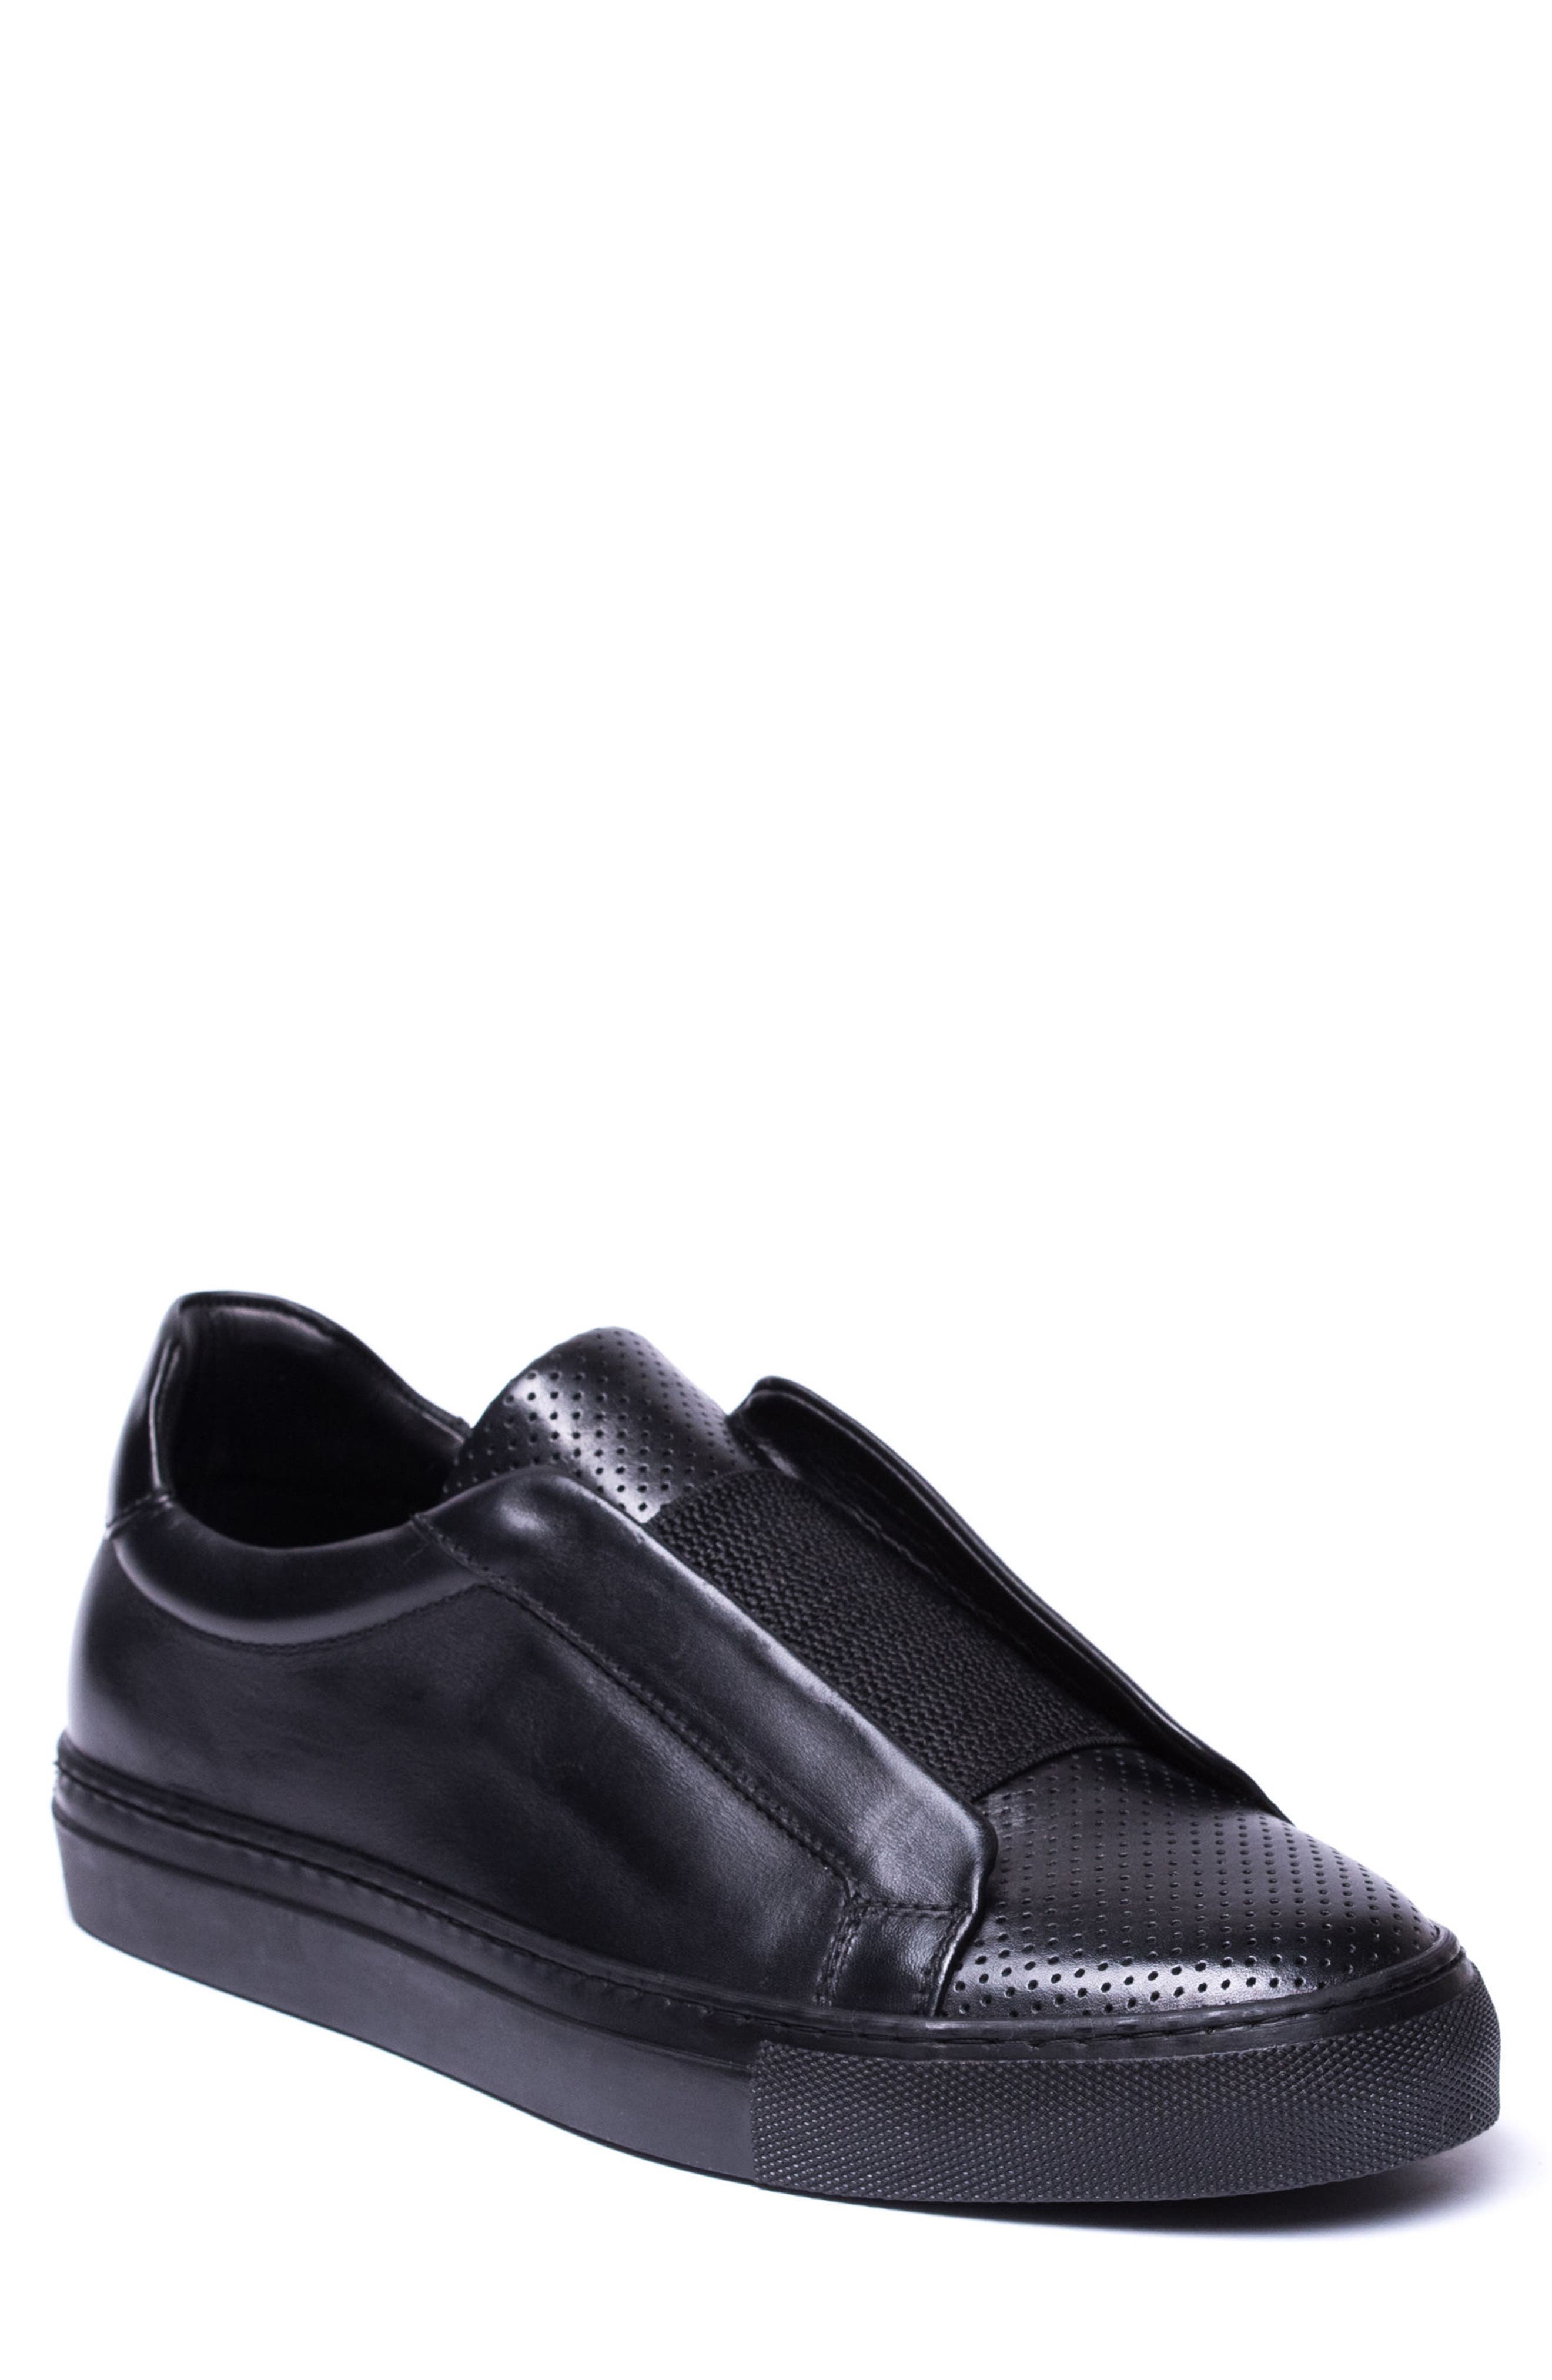 Mane Laceless Perforated Sneaker,                         Main,                         color, Black Leather